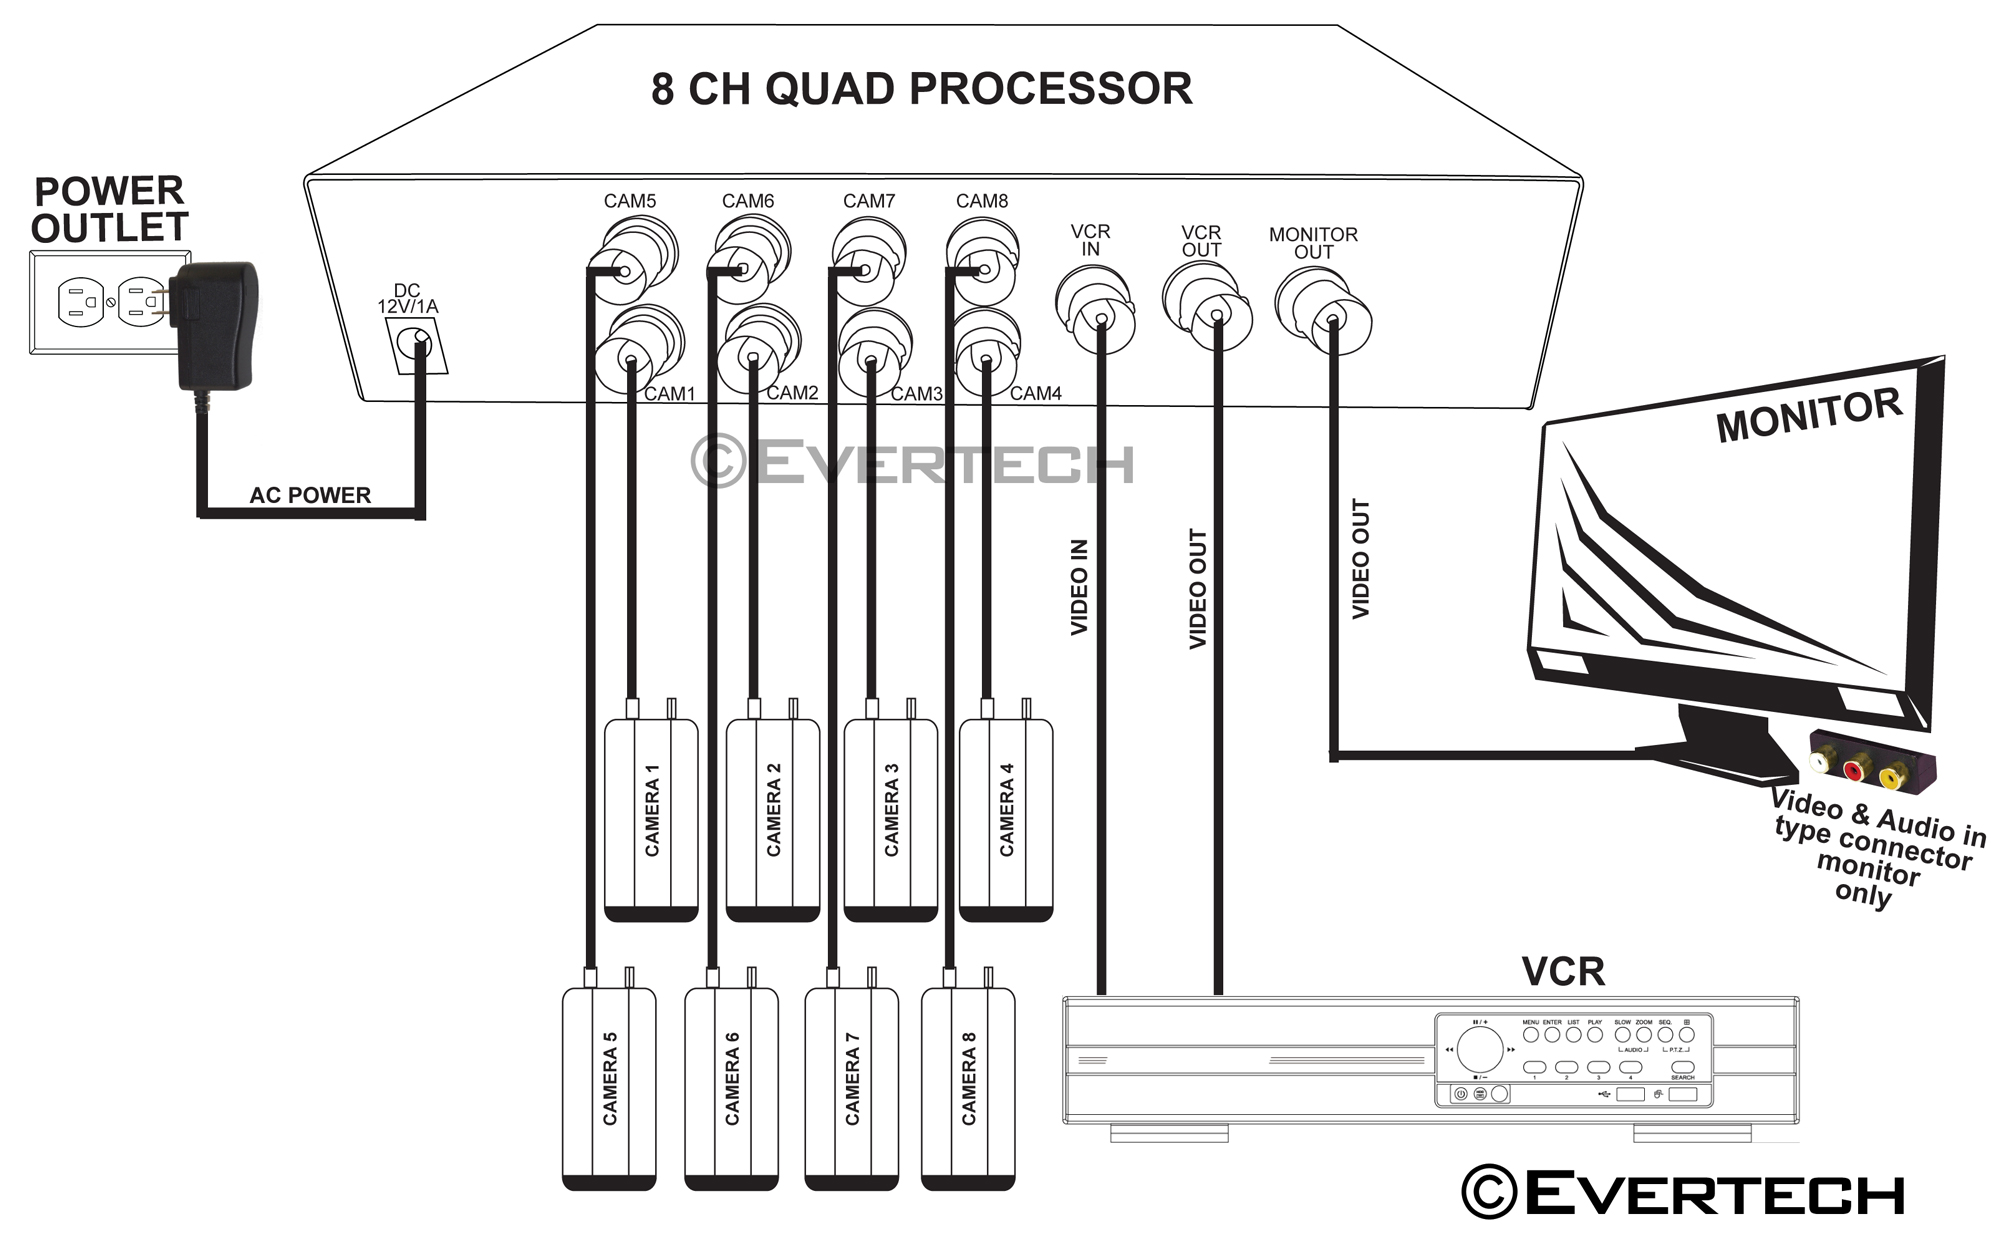 Ev Cq208 8 Channel Color Quad Processor High Quality Splitter Switch With Power Adapter Evertech Usa